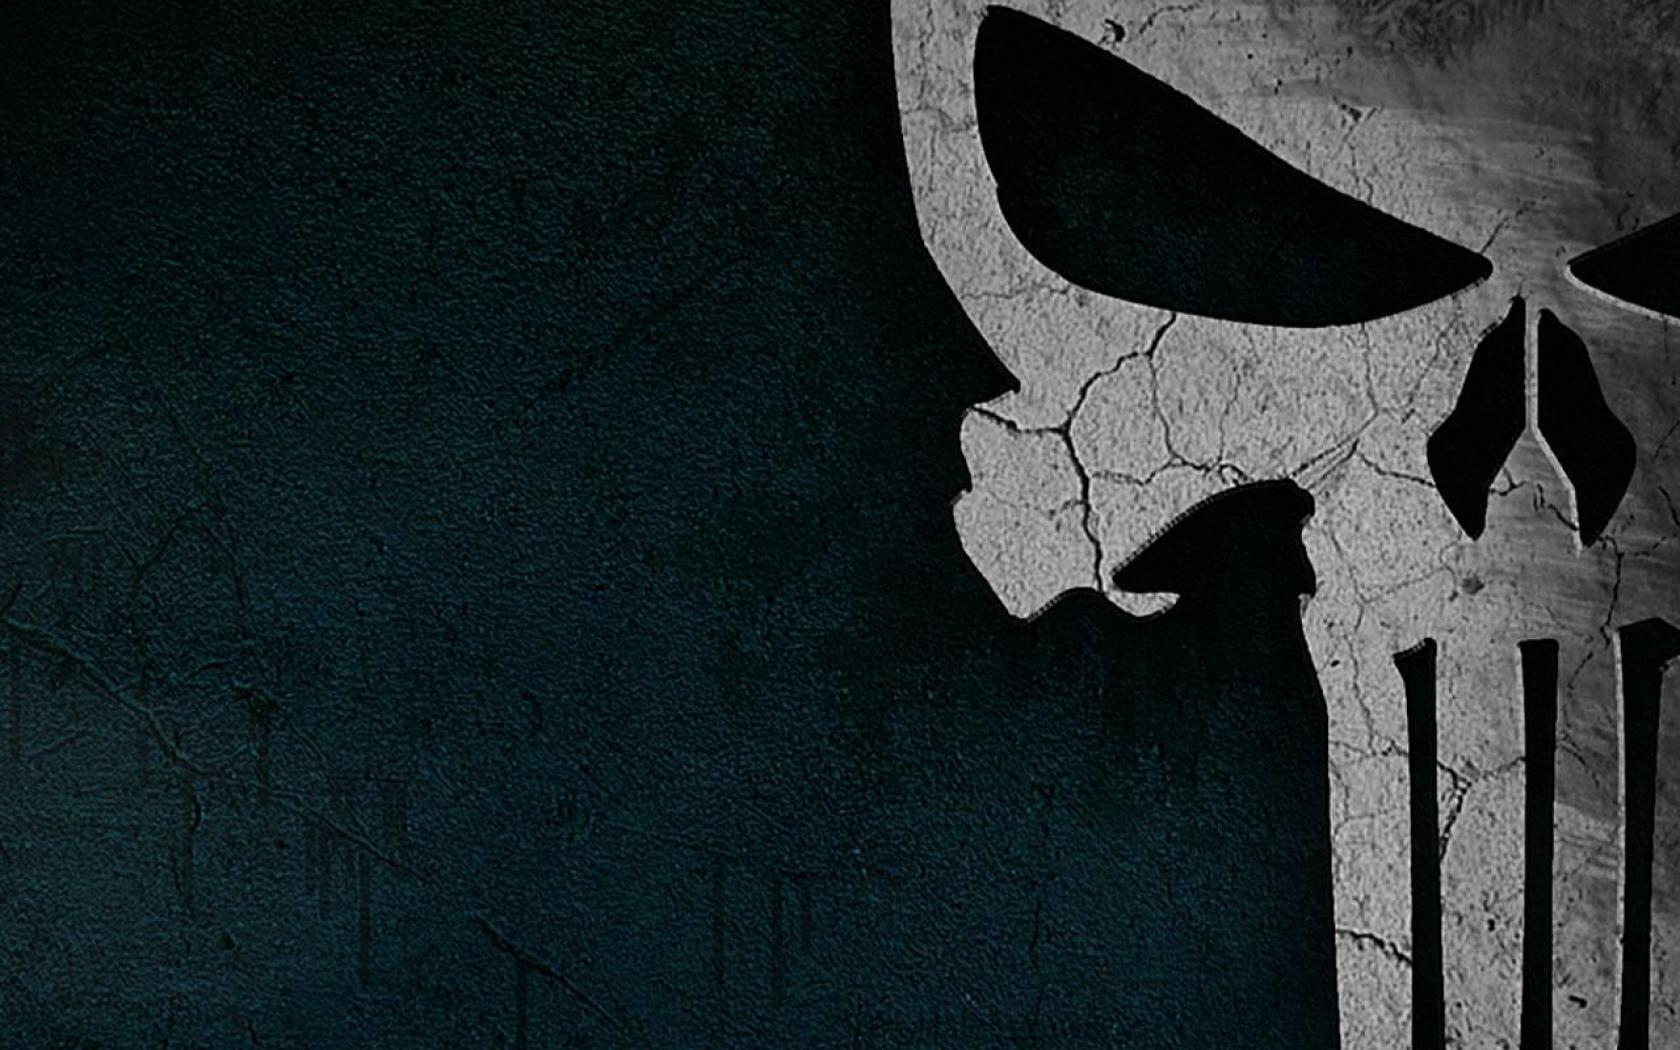 THE PUNISHER marvel gd wallpaper | 1680x1050 | 140019 ...